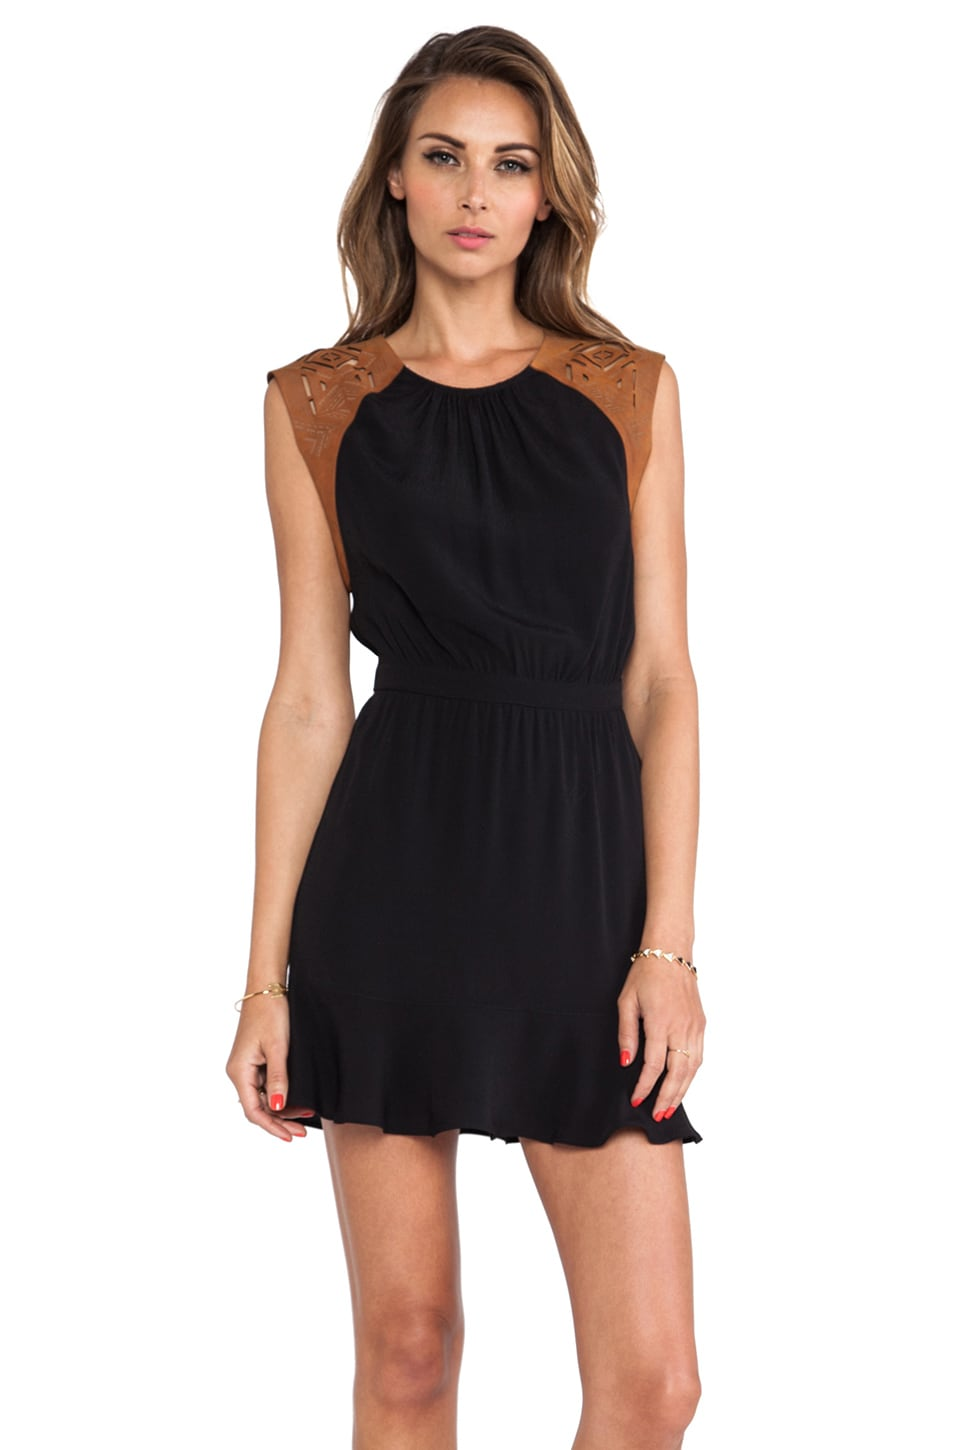 Twelfth Street By Cynthia Vincent Etched Leather Cap Mini Dress in Black